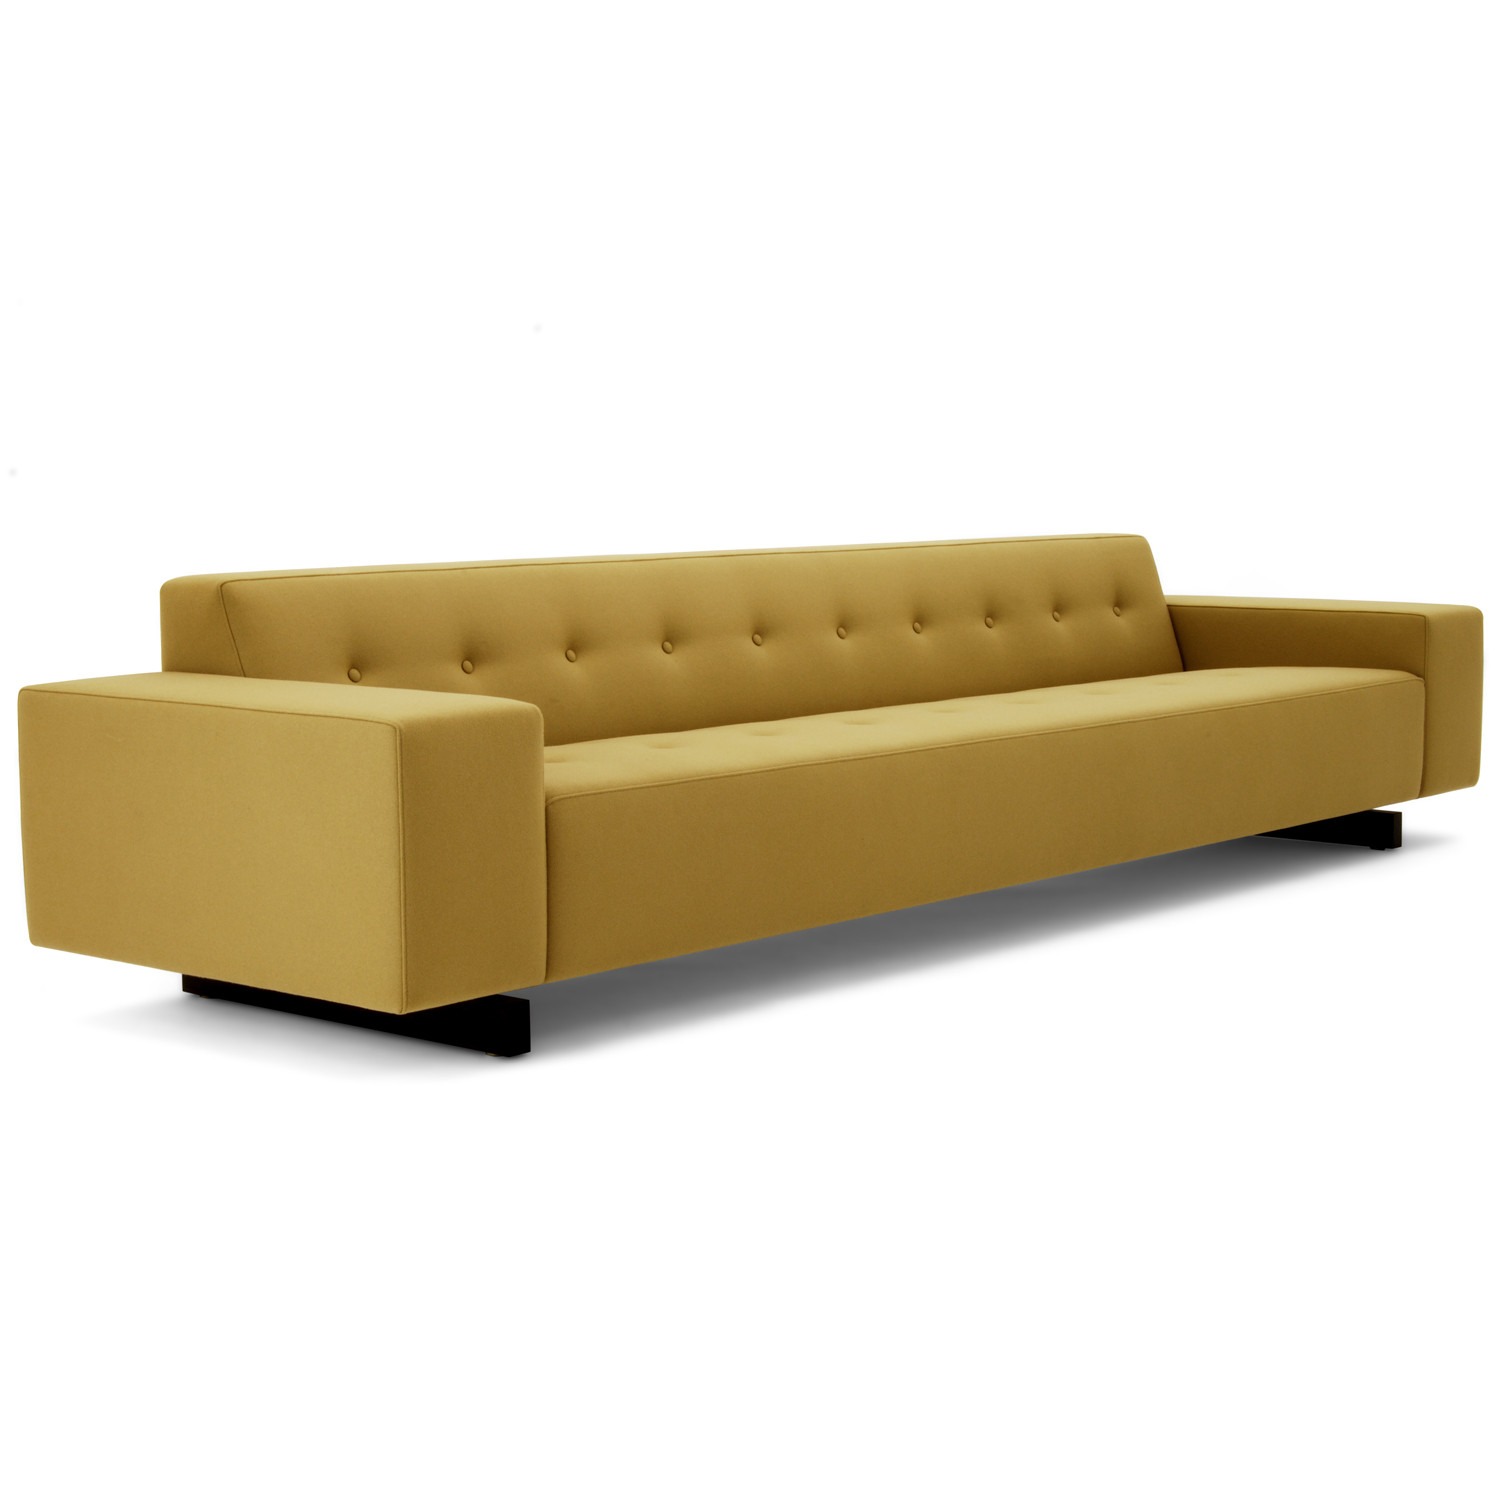 HM46r Sofa Upholstered in Leather